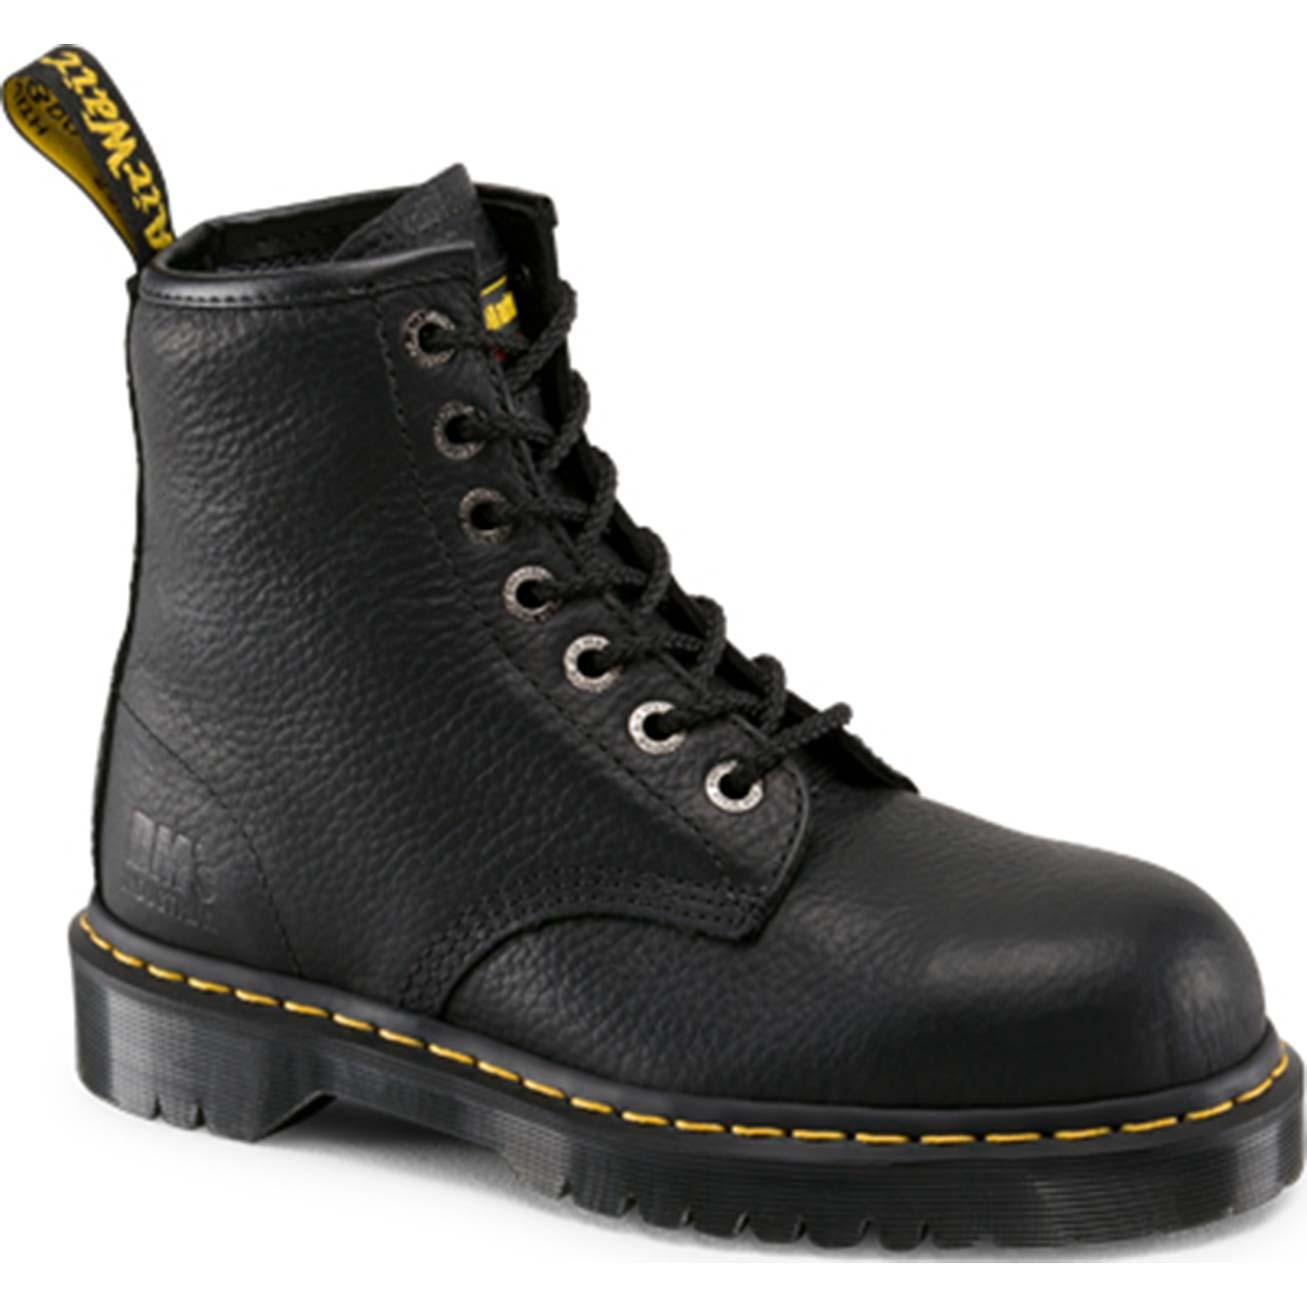 Shop Sale on the official Dr. Martens website. View popular Dr. Martens like the Vibal Sandal, Kristina Sandal, and Ariel Sandal in a variety of leathers, textures and colors.